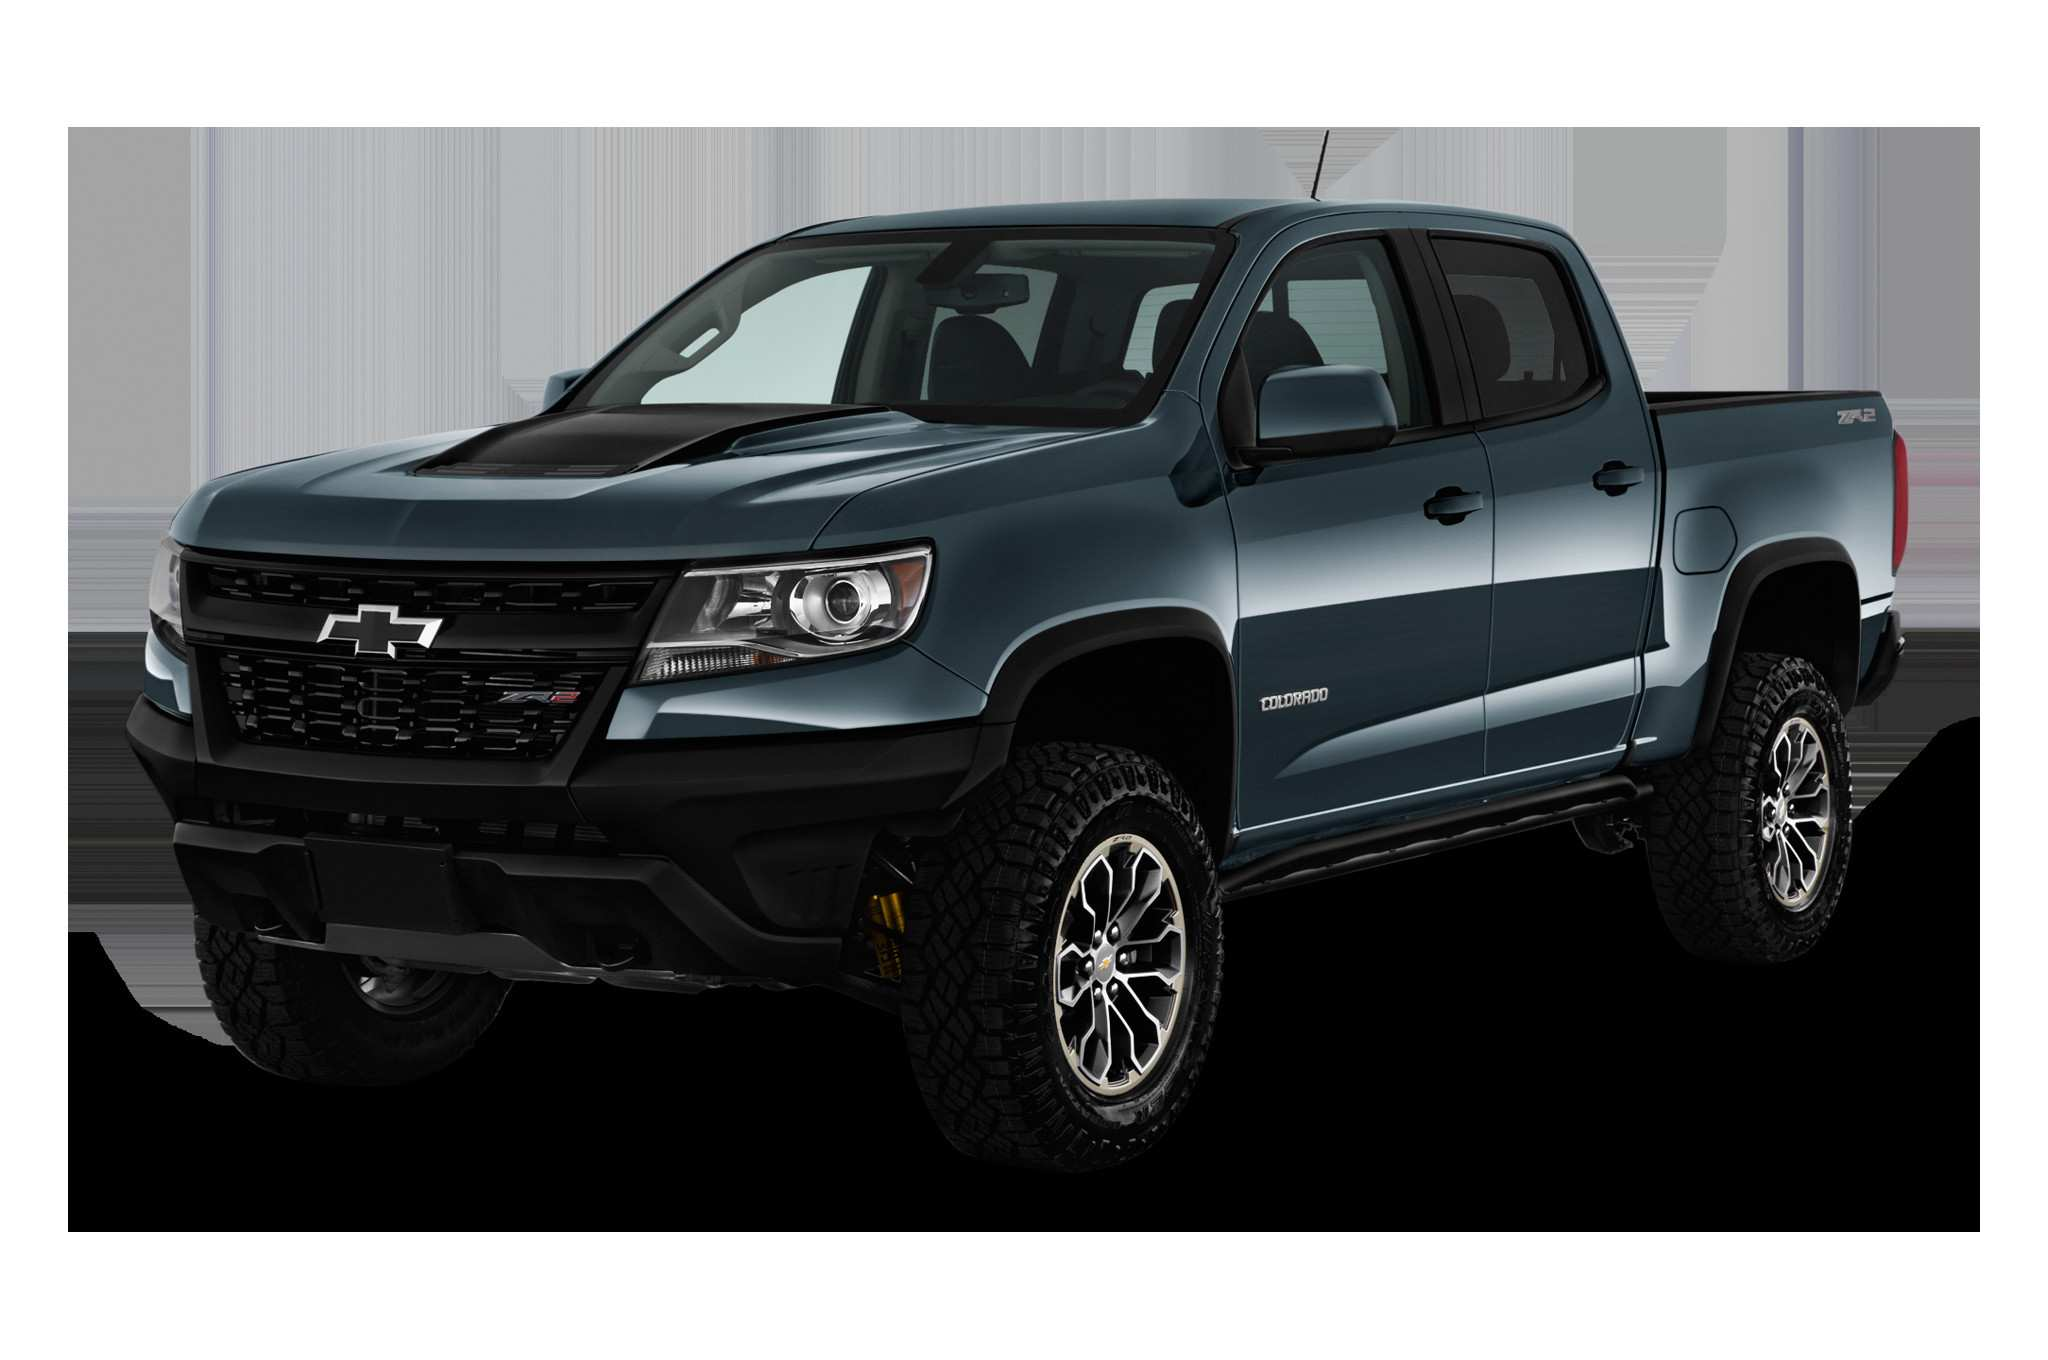 80 The Best 2019 Chevy Colorado Going Launched Soon Speed Test